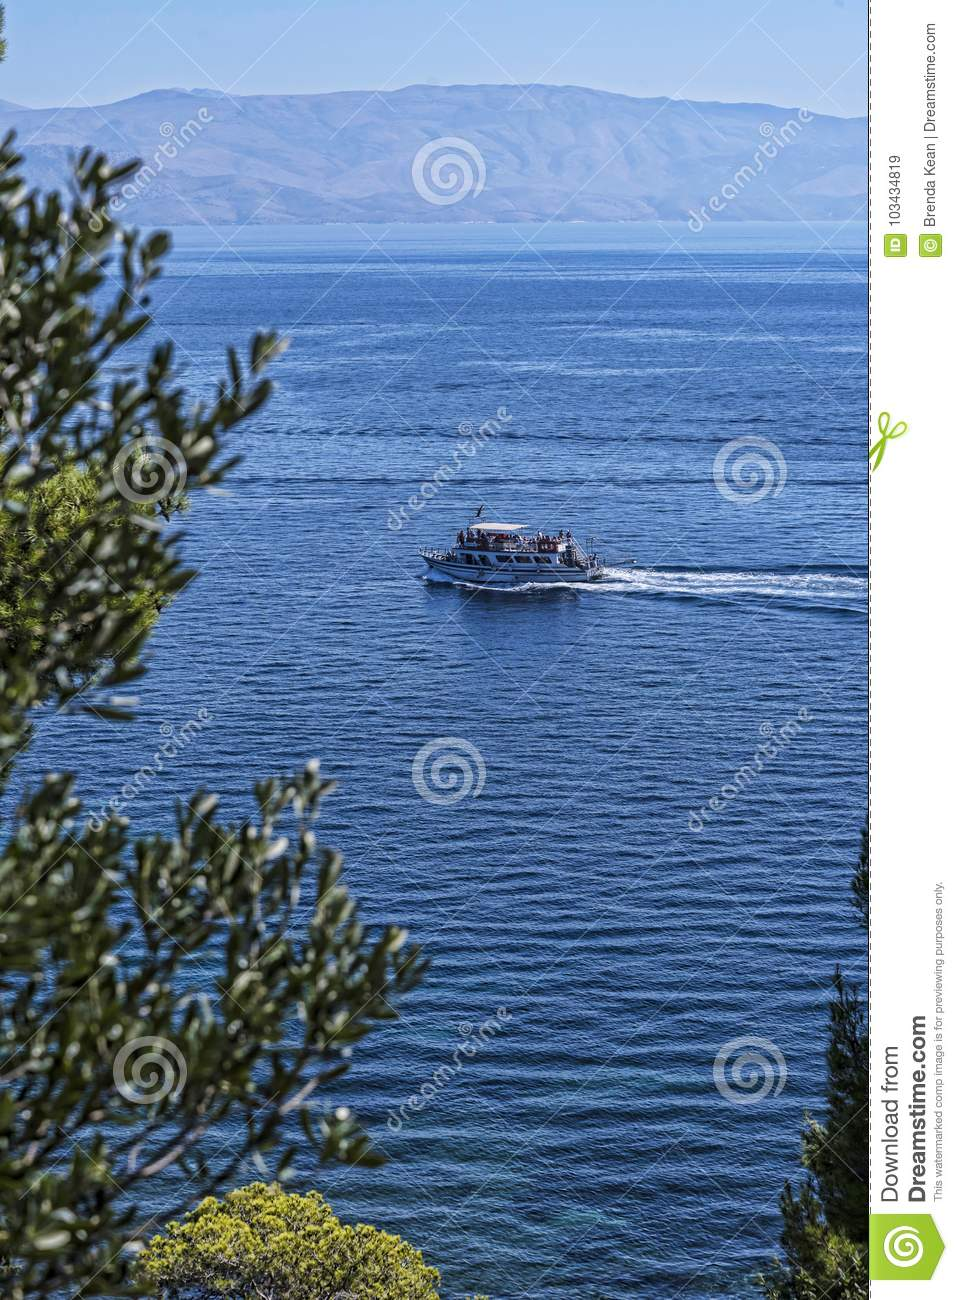 View of the sea from the Grounds of the Mon Pepose Palace in Corfu Greece